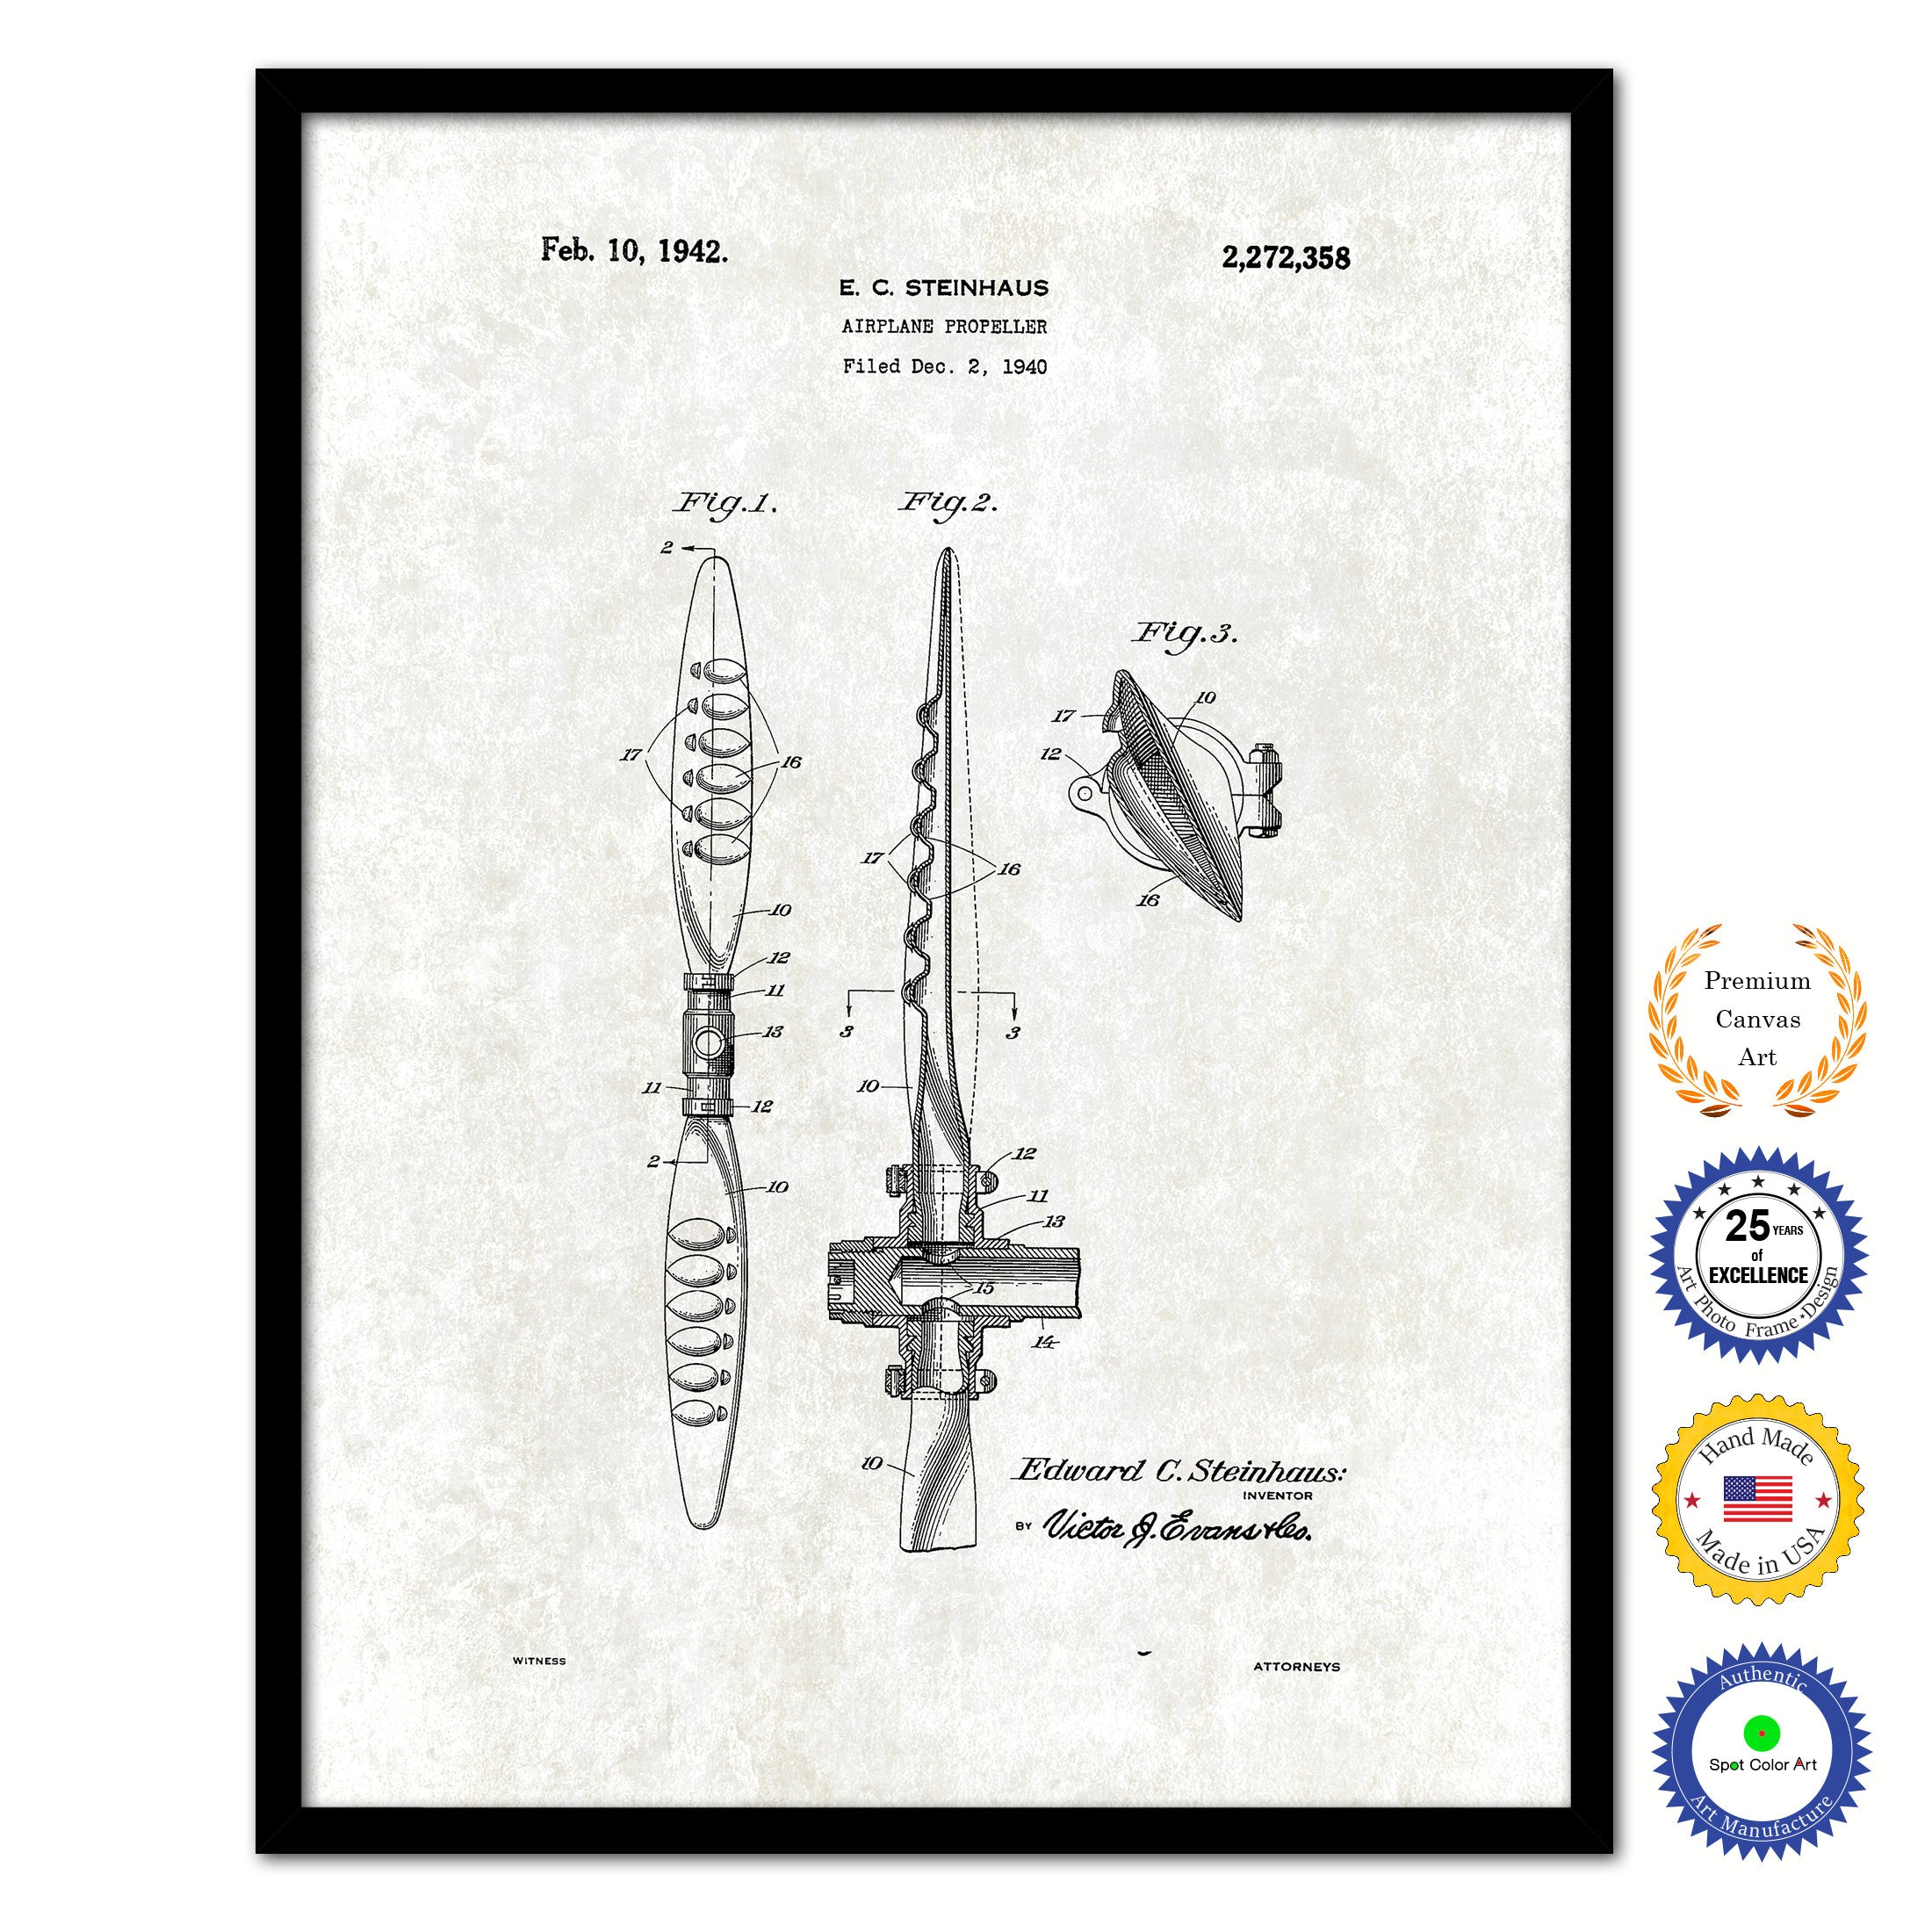 1942 Airplane Propeller Vintage Patent Artwork Black Framed Canvas Print Home Office Decor Great for Pilot Gift